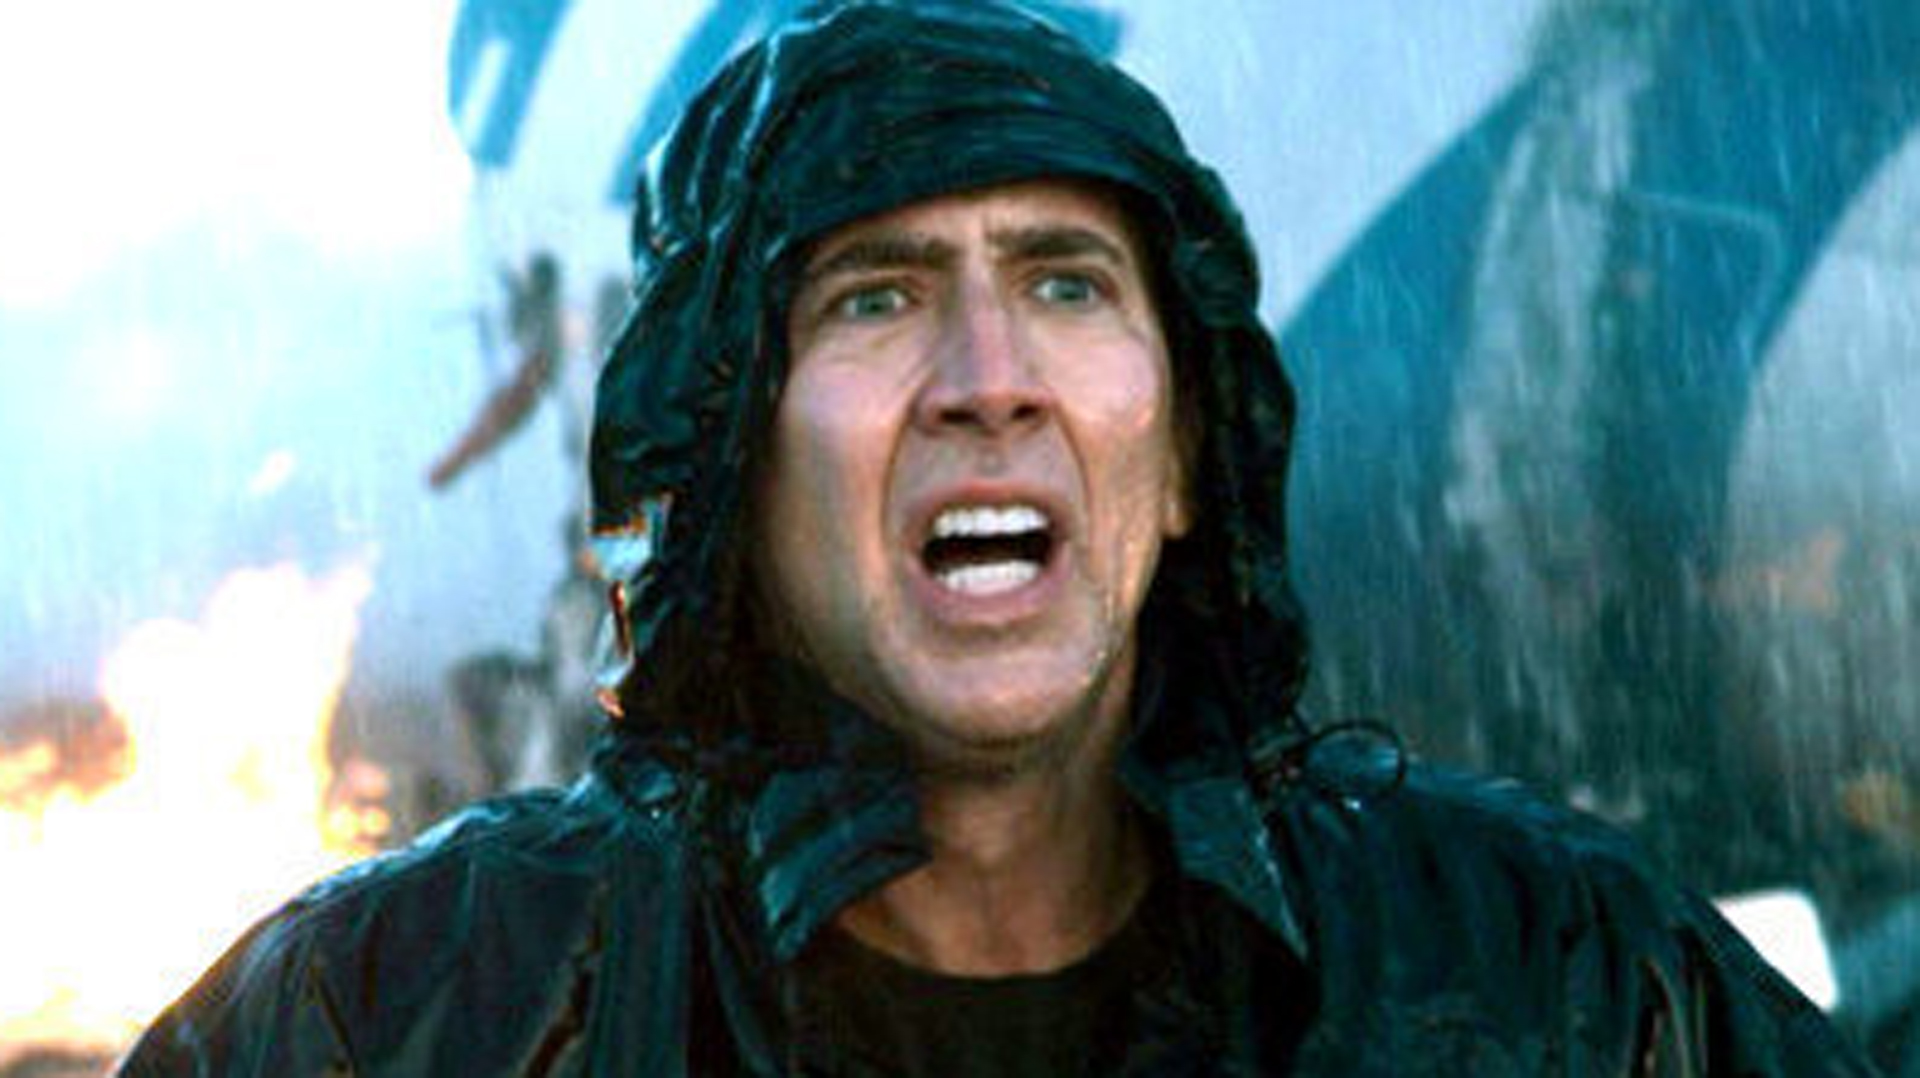 Critically hated movies that are actually awesome